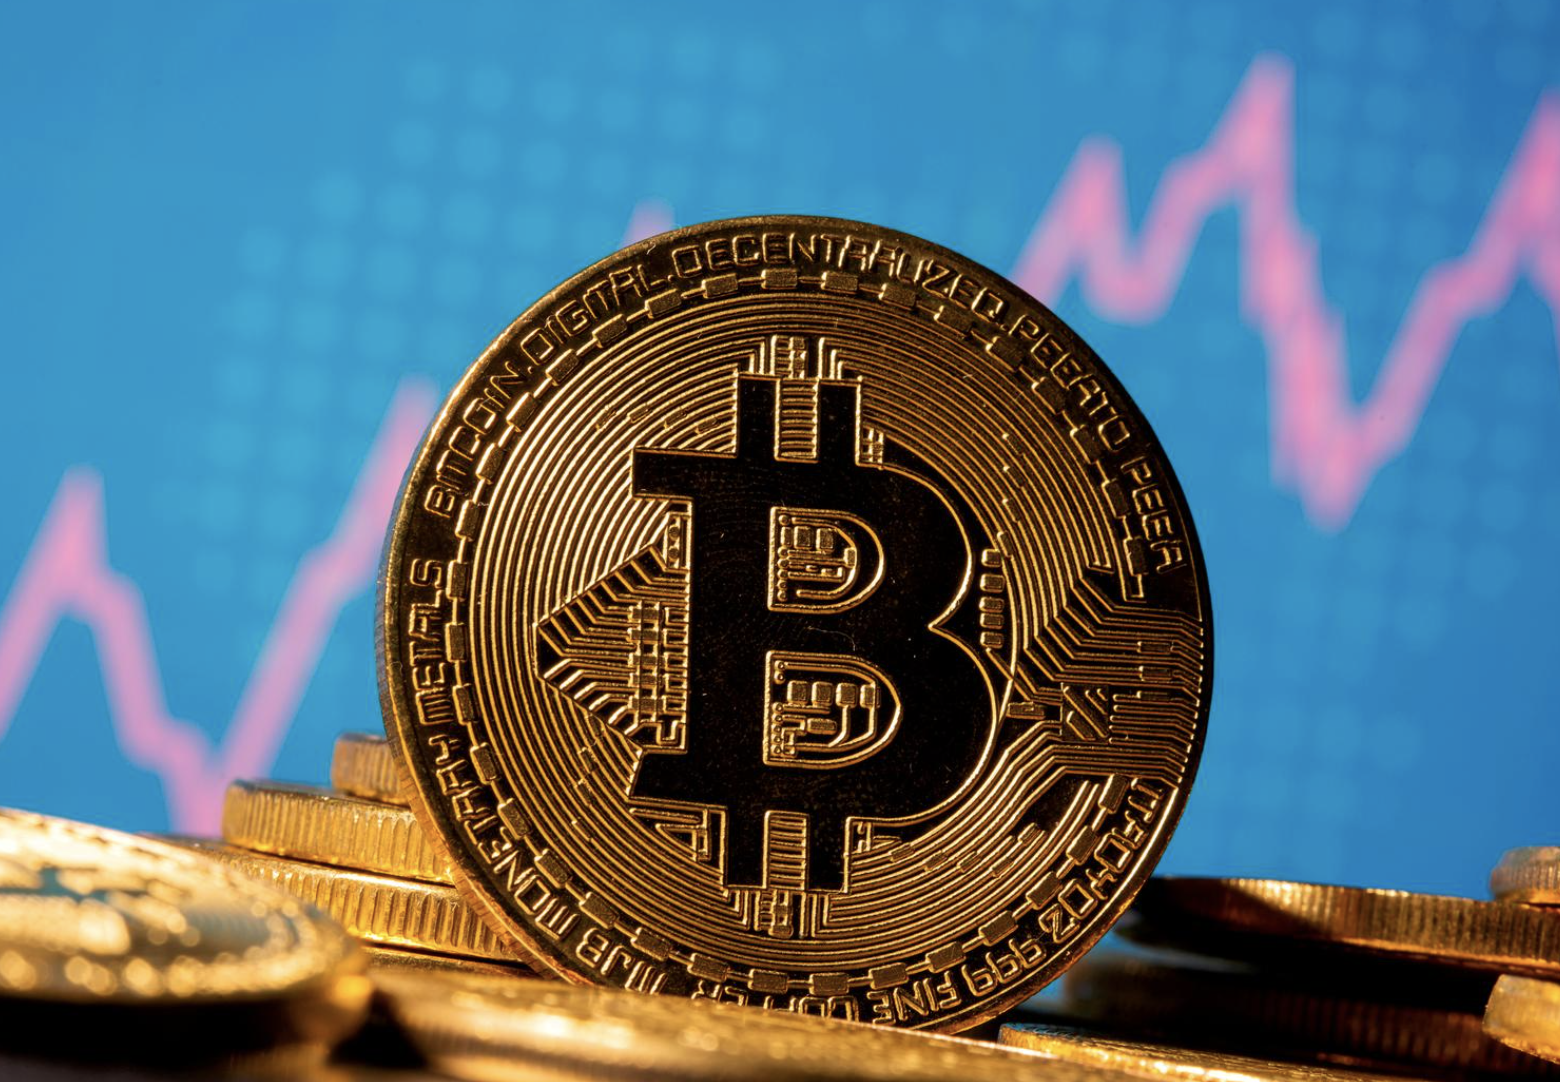 BlackRock to Add Bitcoin as Eligible Investment to Two Funds